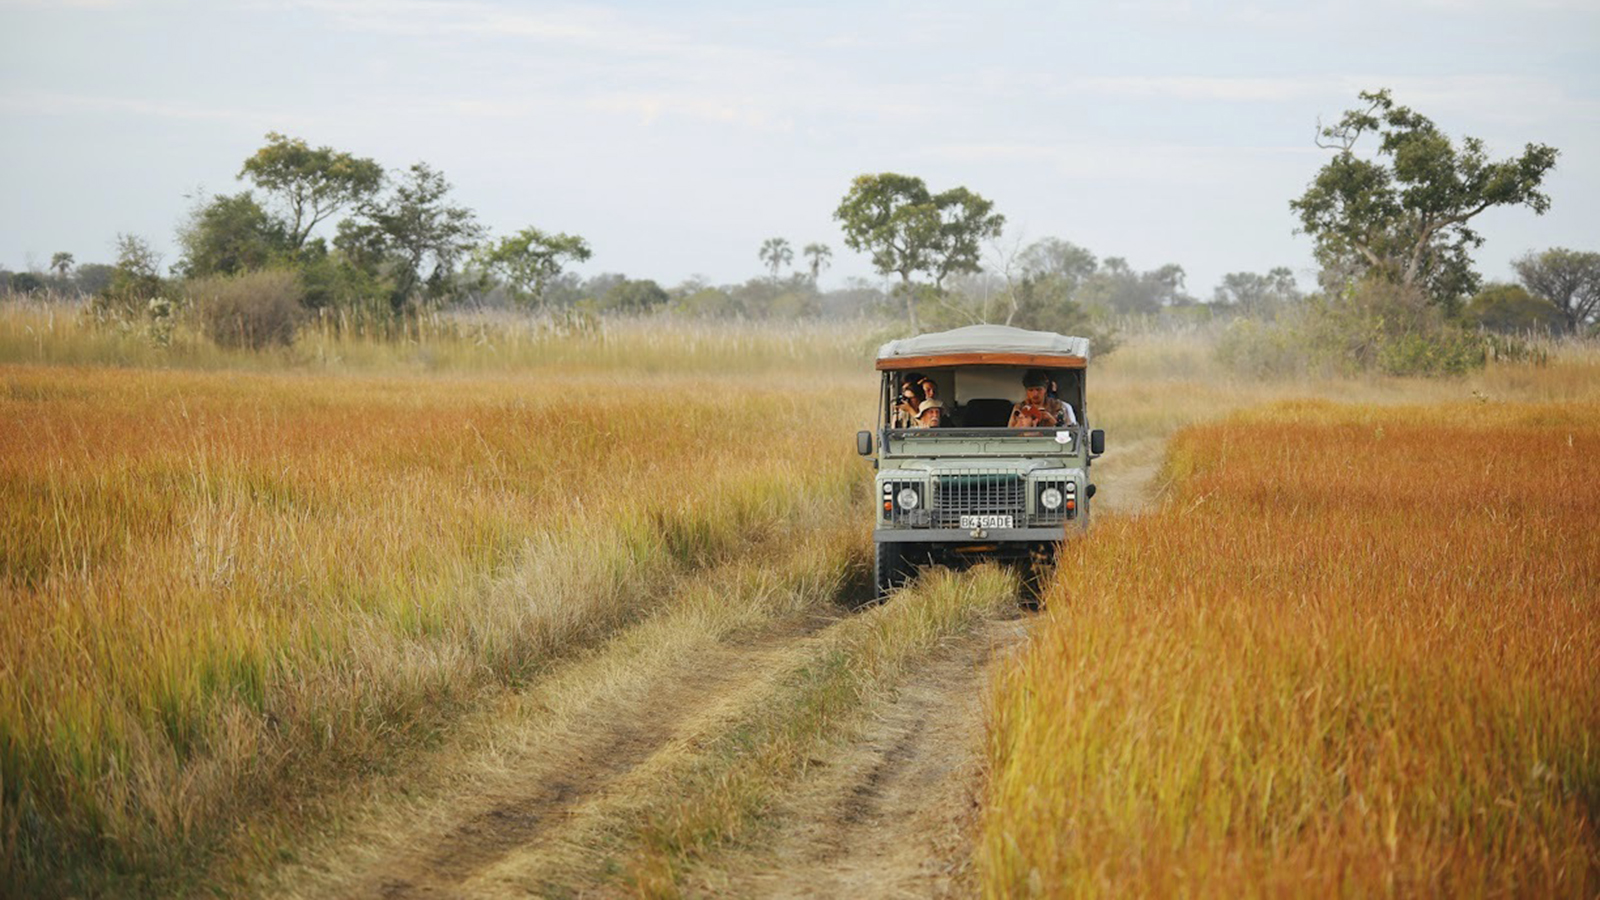 Jeep driving through African Savannah